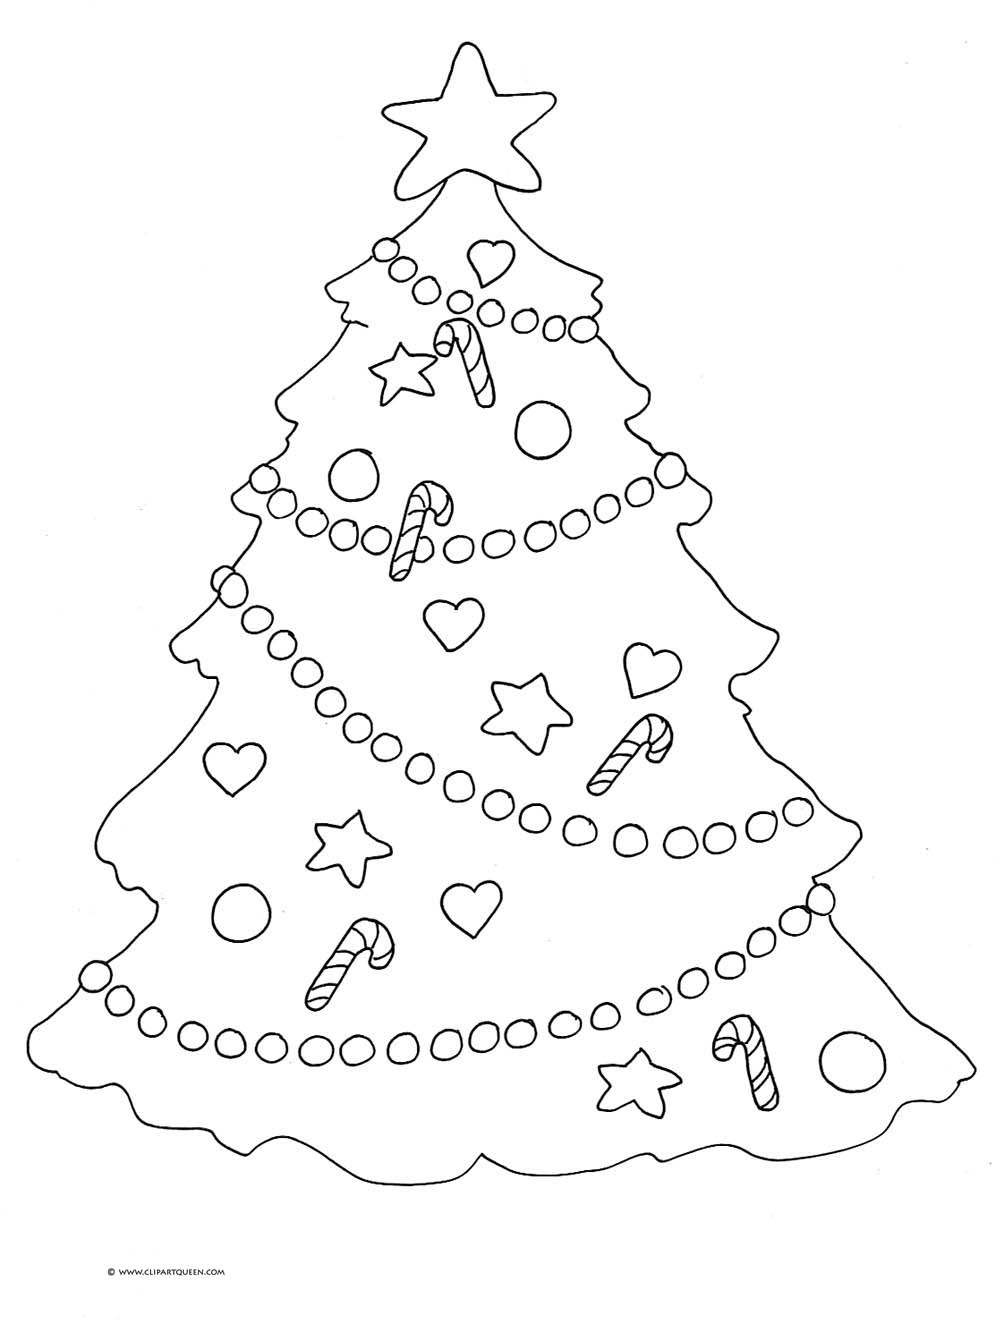 christmas tree color page christmas tree coloring pages for childrens printable for free page color christmas tree